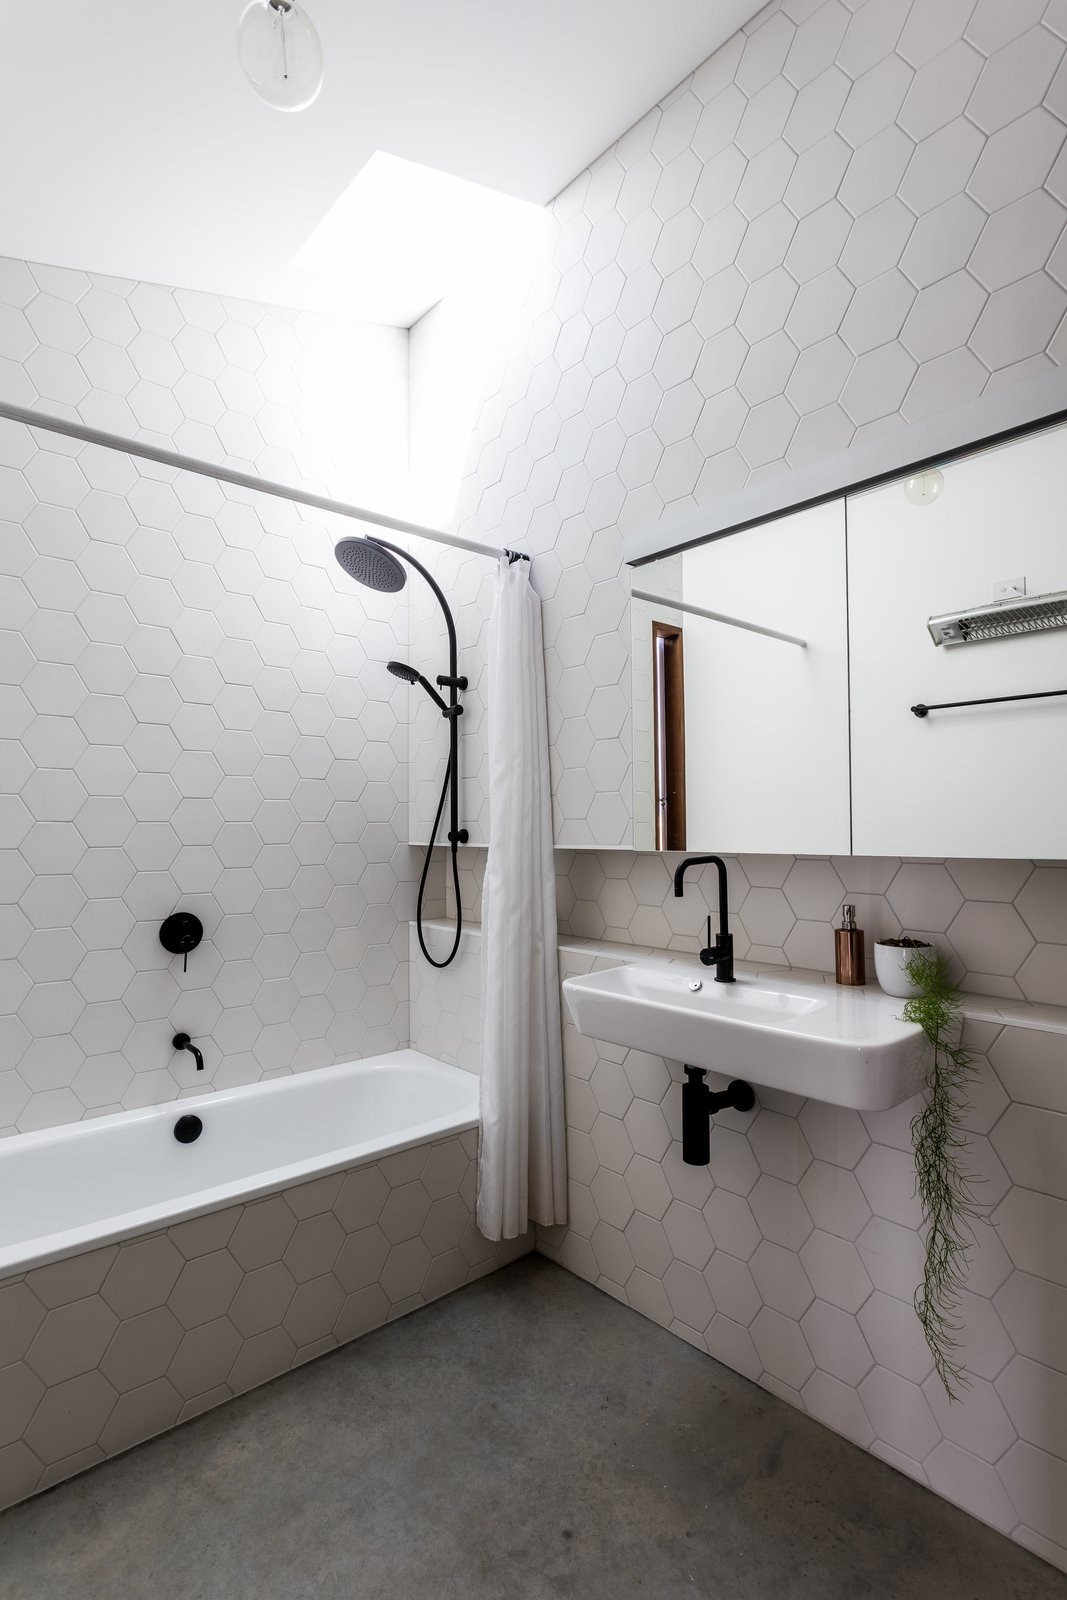 Bath, Concrete, Wall Mount, Alcove, Ceramic Tile, Pendant, and Full The finish palette in the bathroom relates to the kitchen for consistency.  Best Bath Alcove Ceramic Tile Concrete Photos from An Architect's 1958 Midcentury in Tasmania Gets a Graceful Renovation